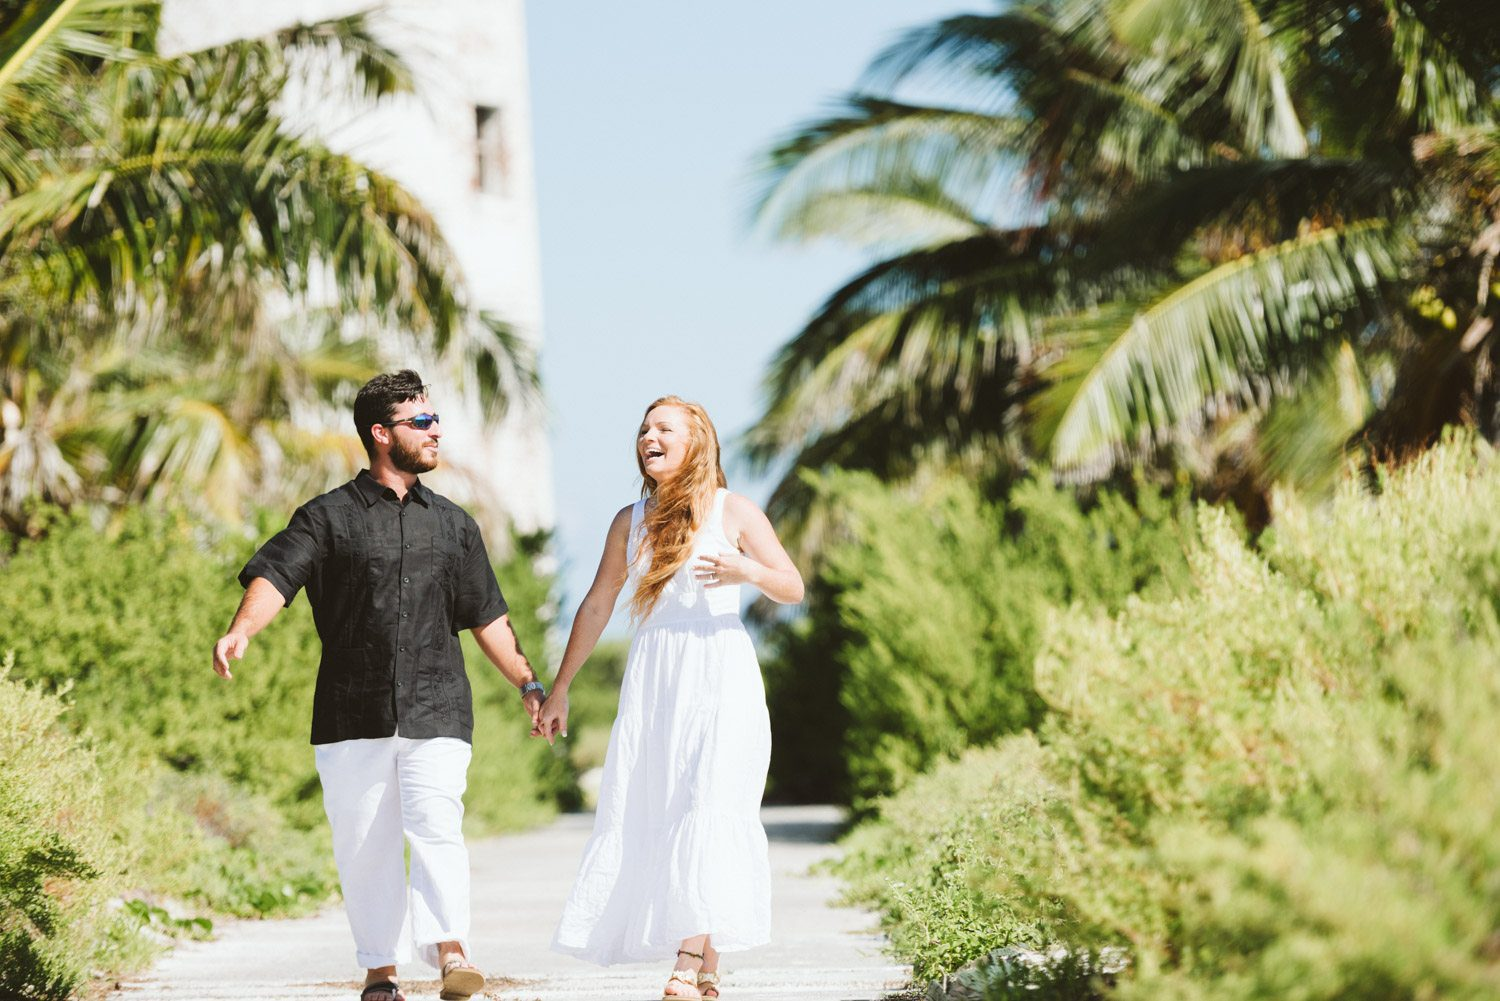 Katherine Oscar Engagement Photos Dry Tortugas 22 - Island Adventure Engagement Session - Dry Tortugas National Park and Fort Jefferson